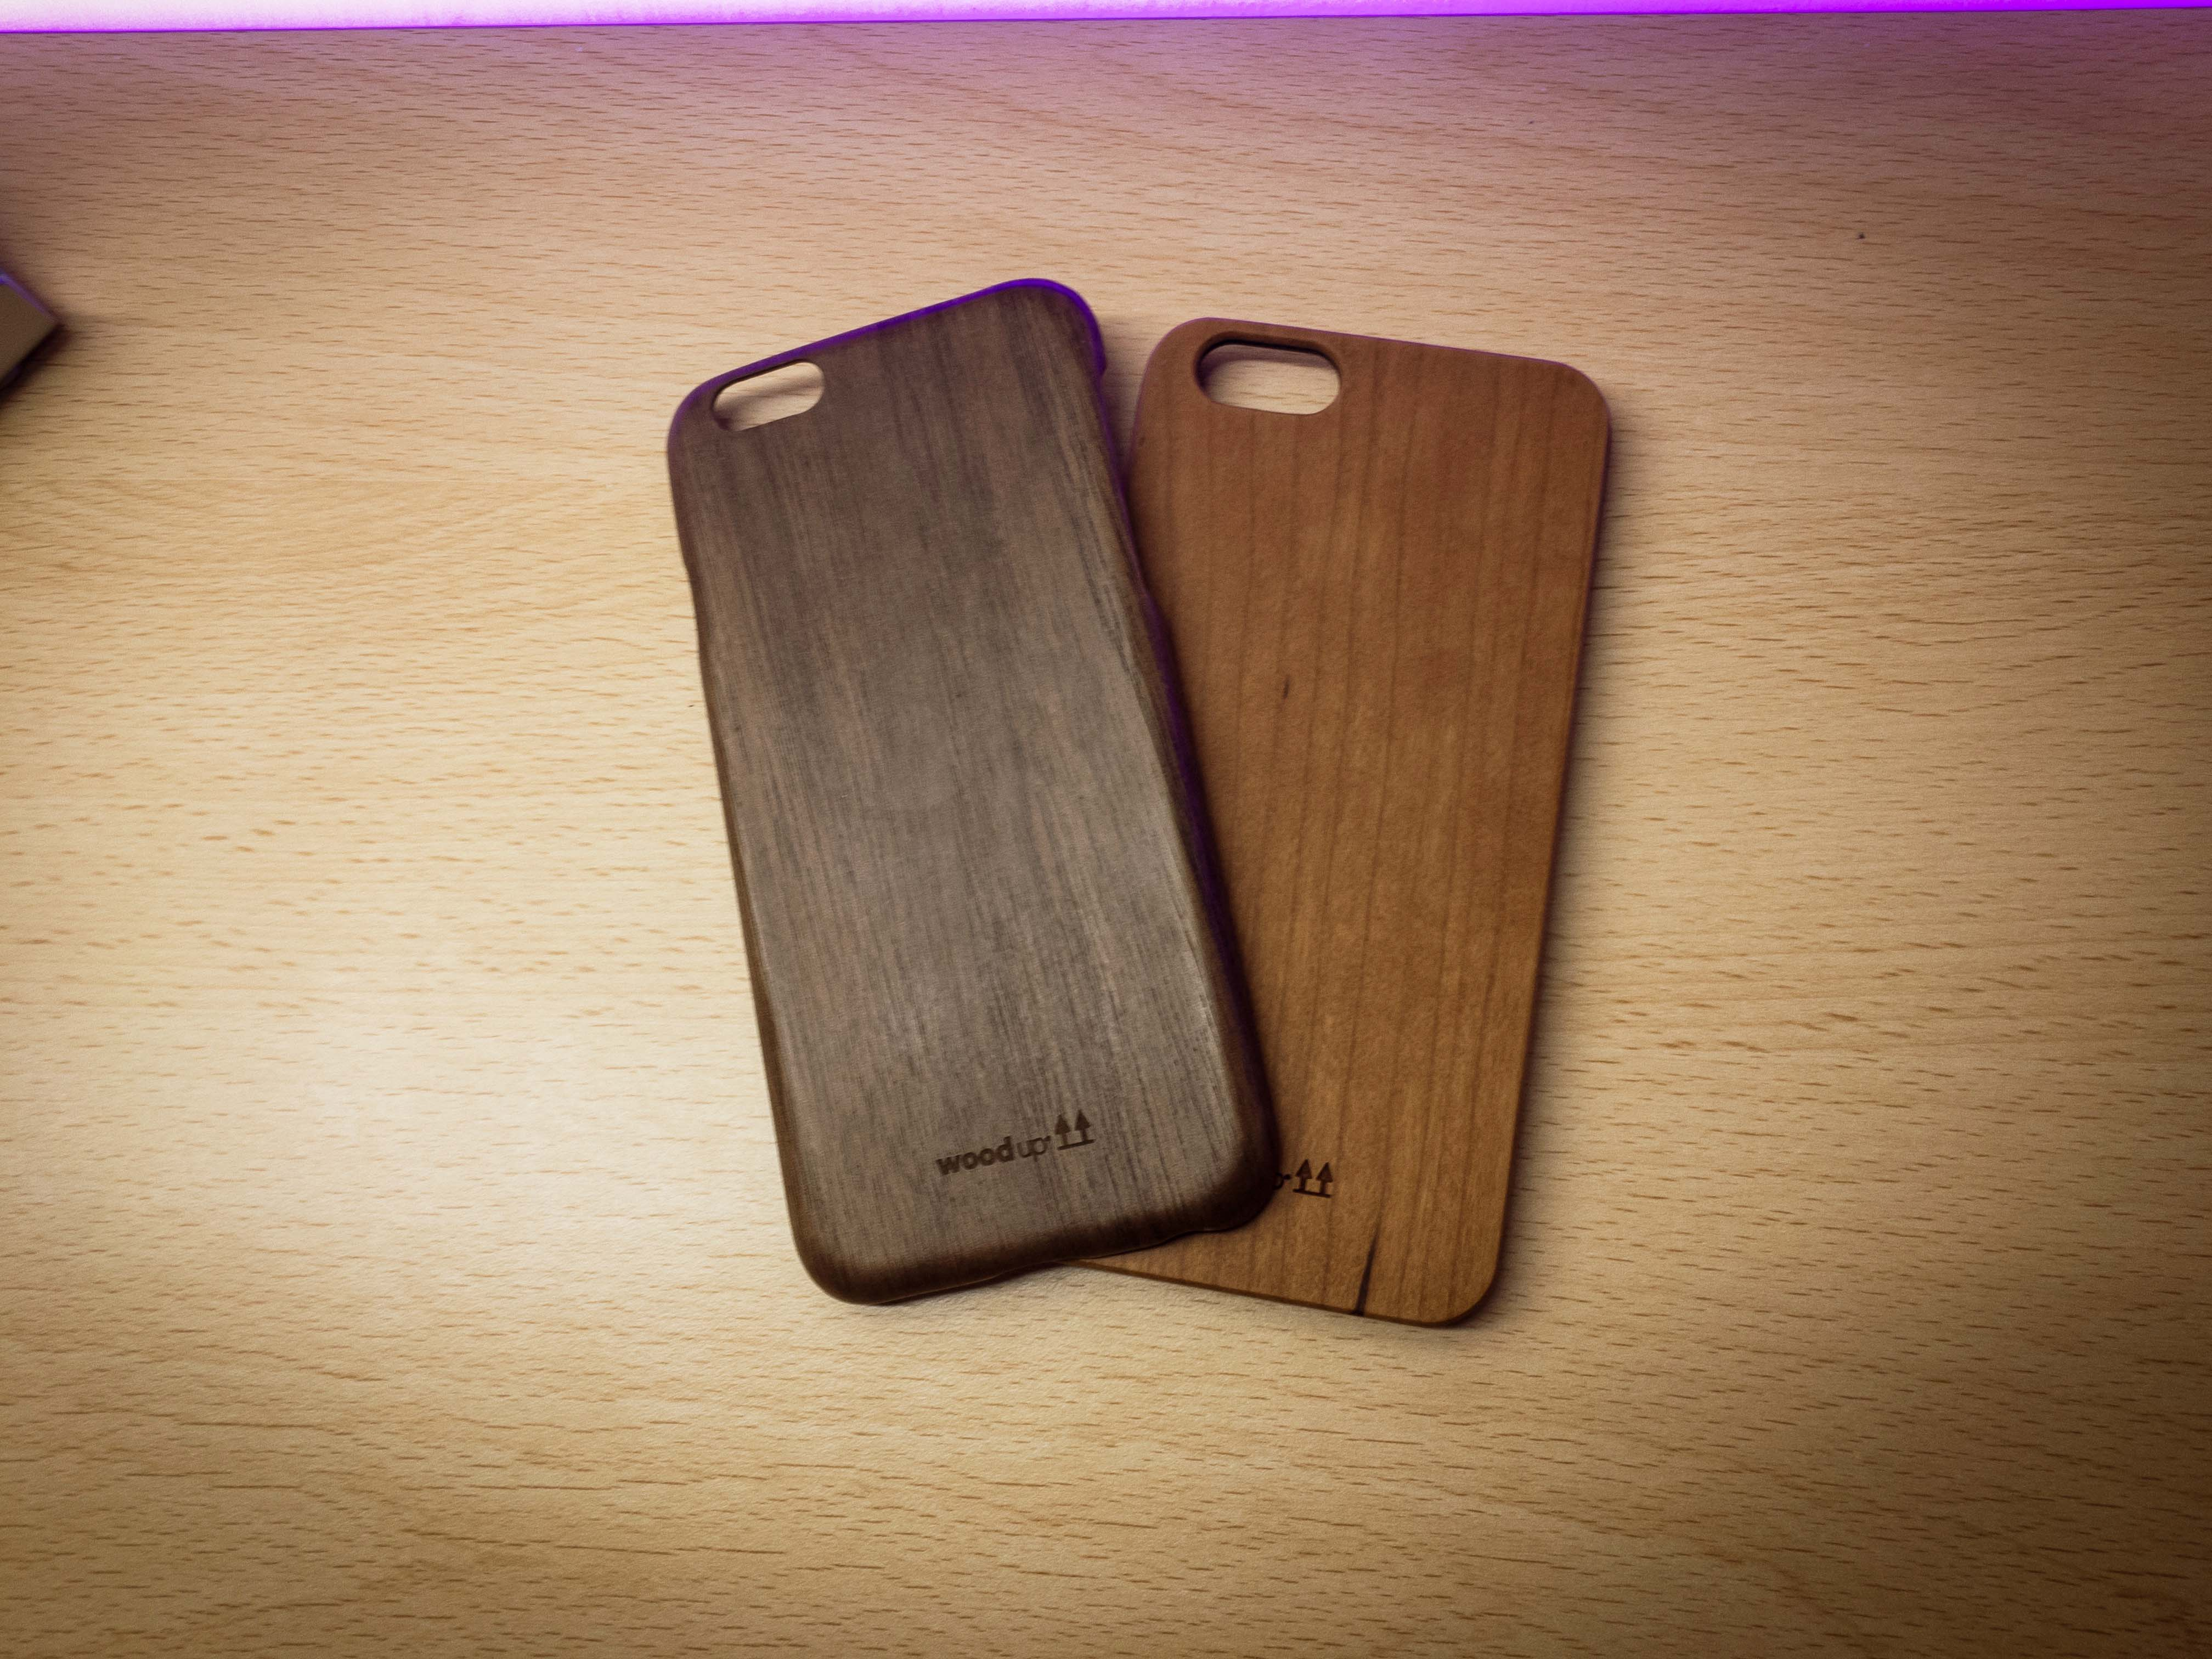 [RECENSIONE] Cover in legno WOOD UP